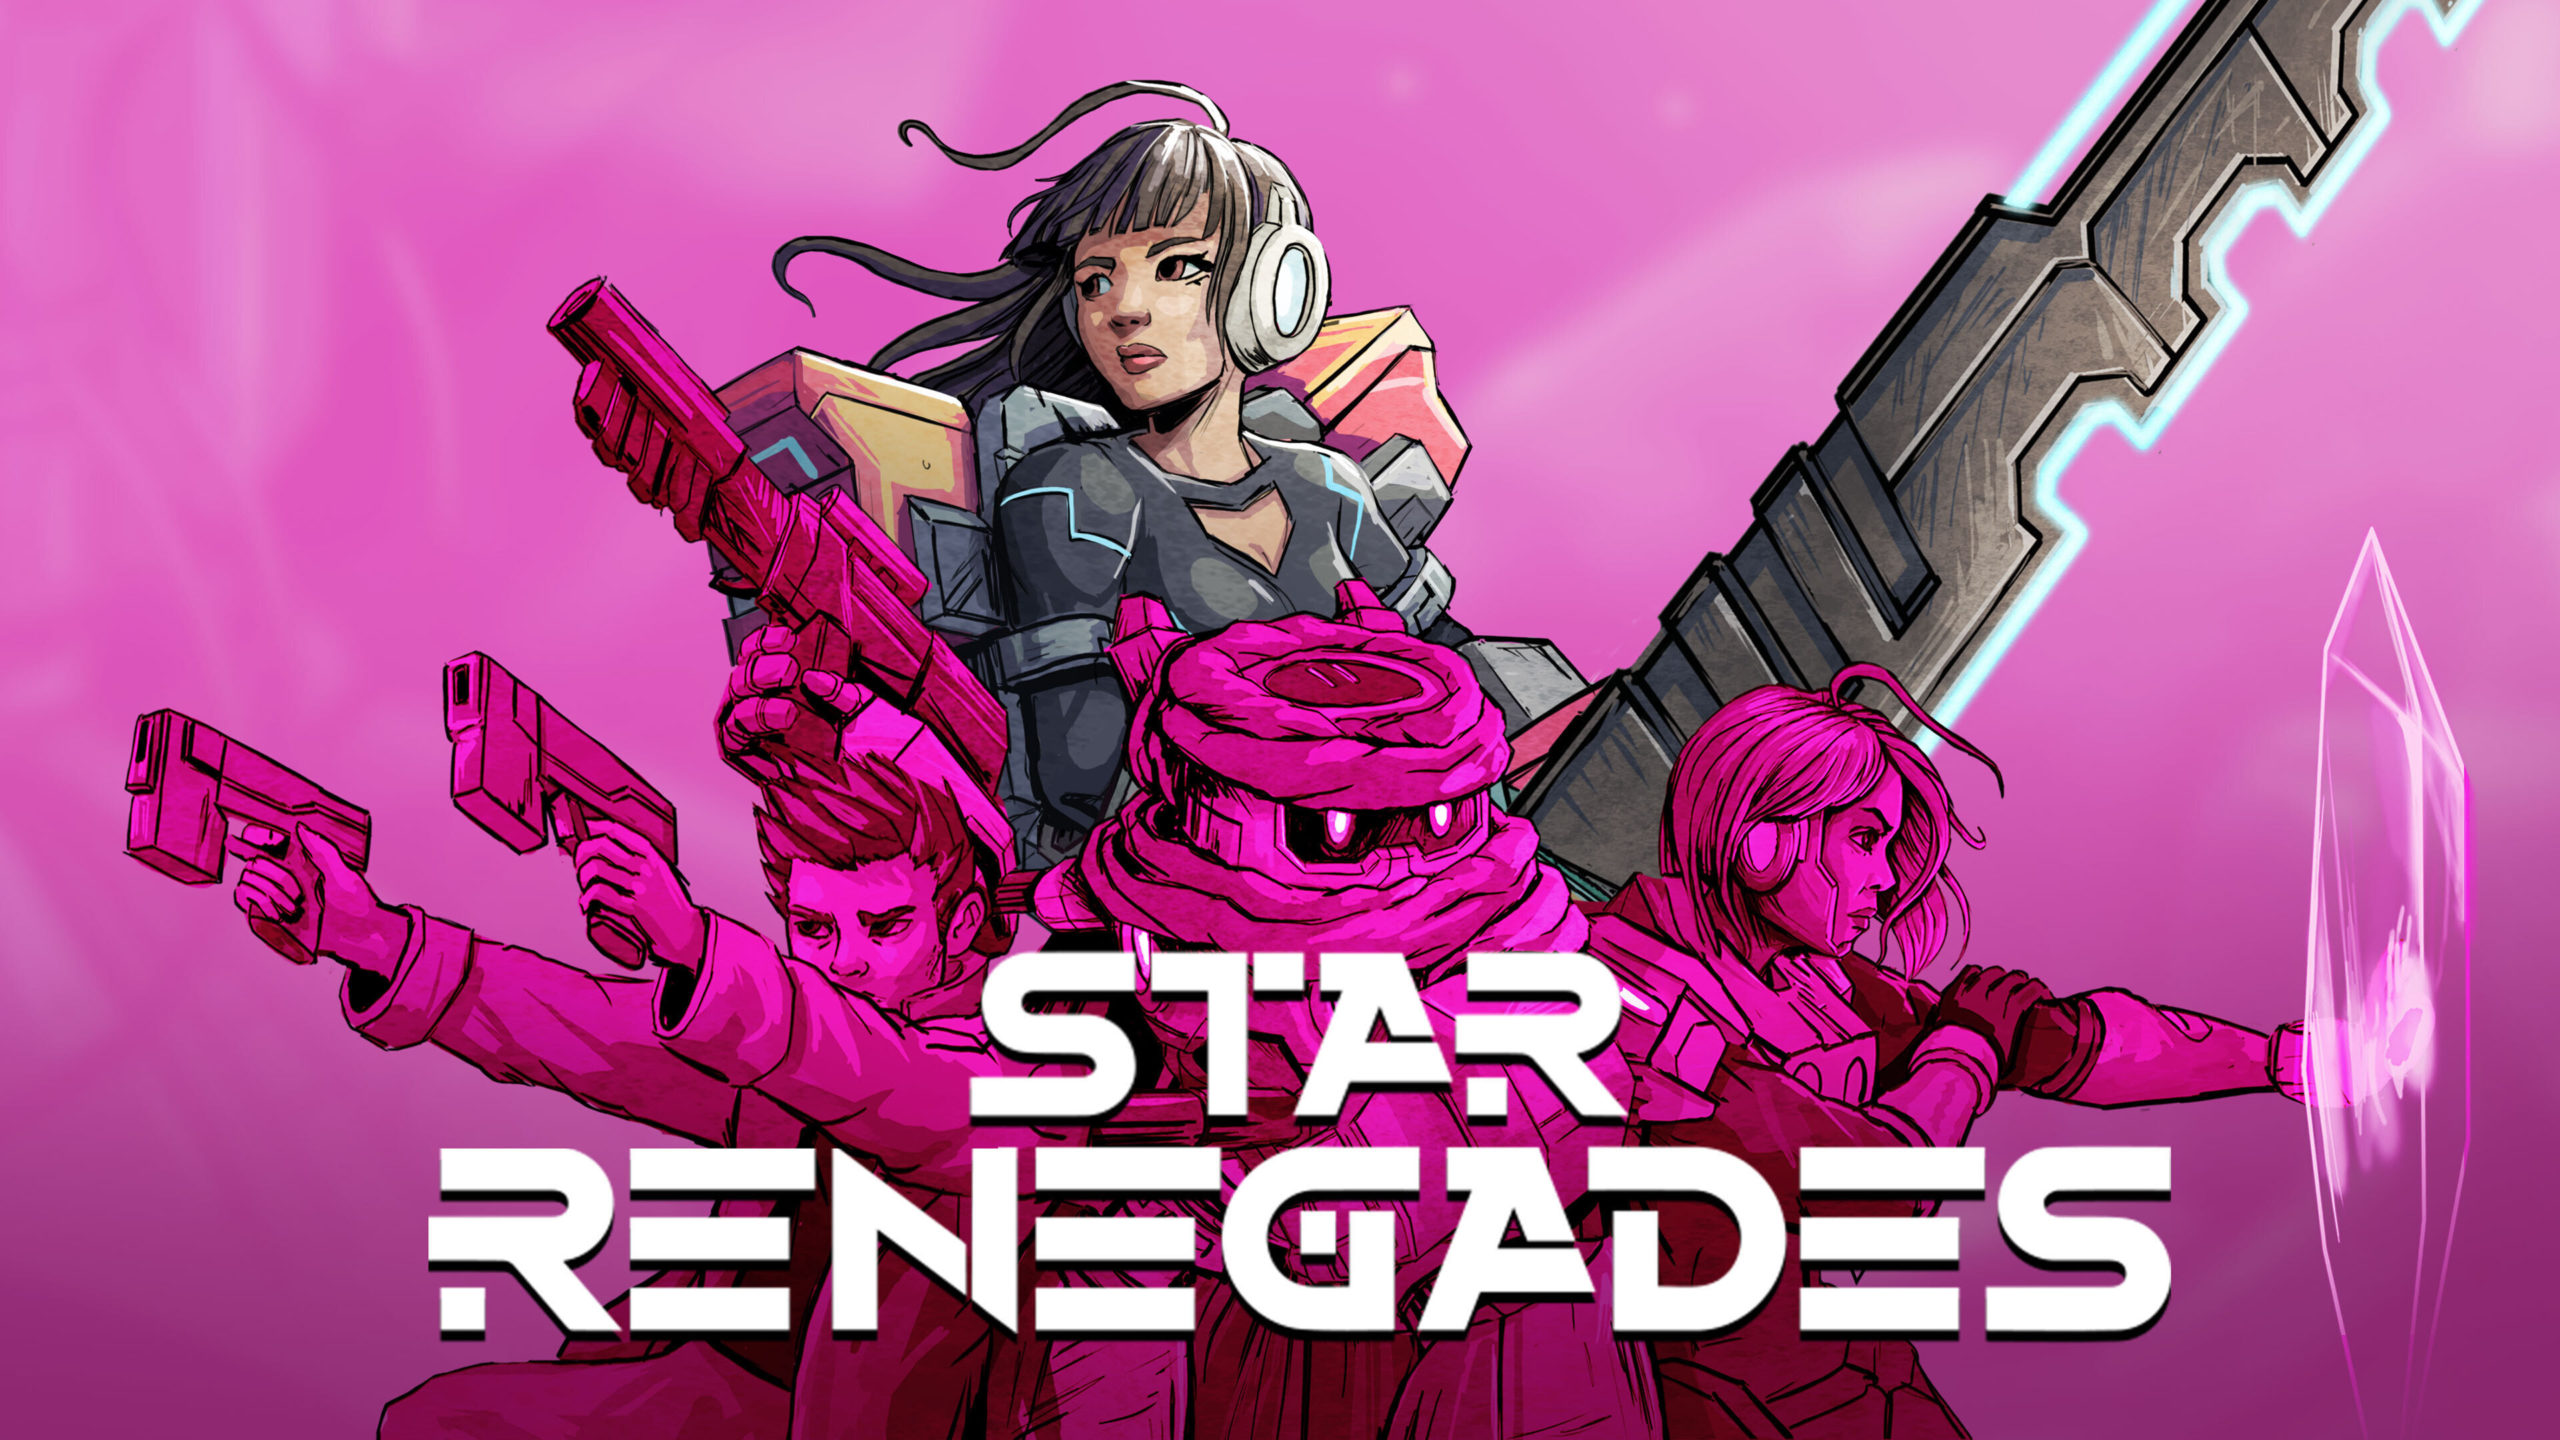 Star Renegade